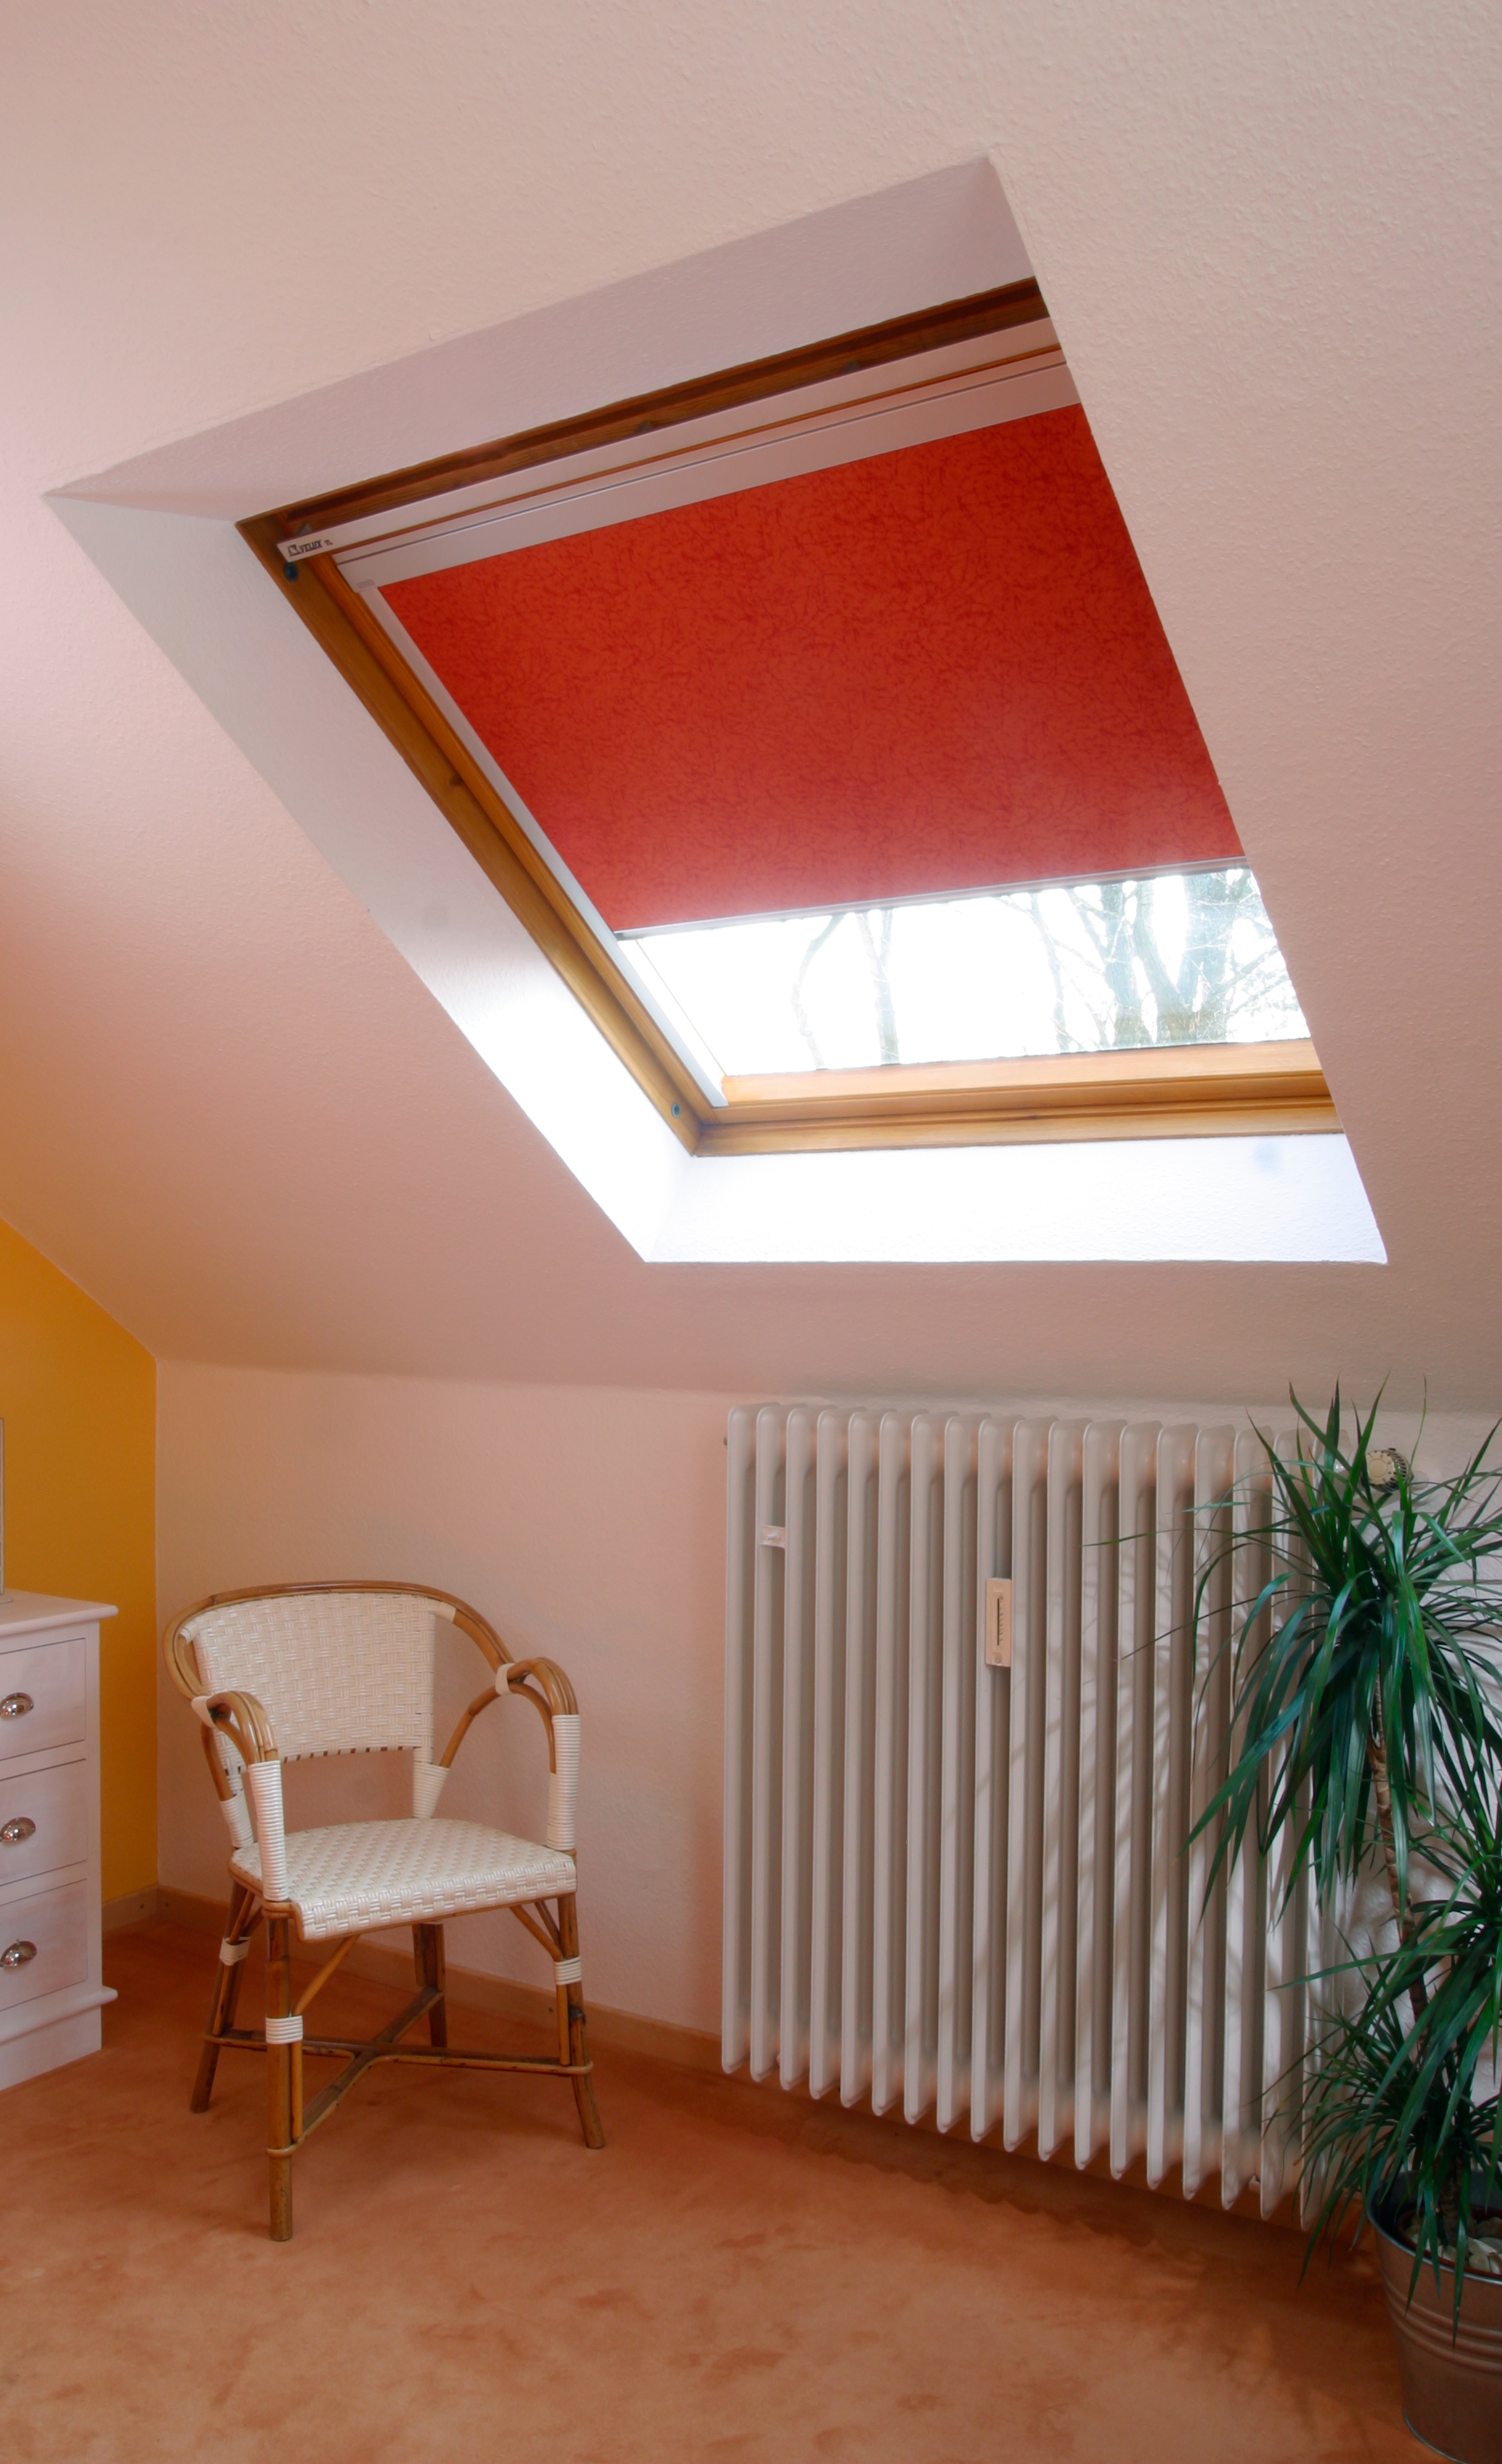 velux dachfenster rollo reparieren velux integra fr with velux dachfenster rollo reparieren. Black Bedroom Furniture Sets. Home Design Ideas